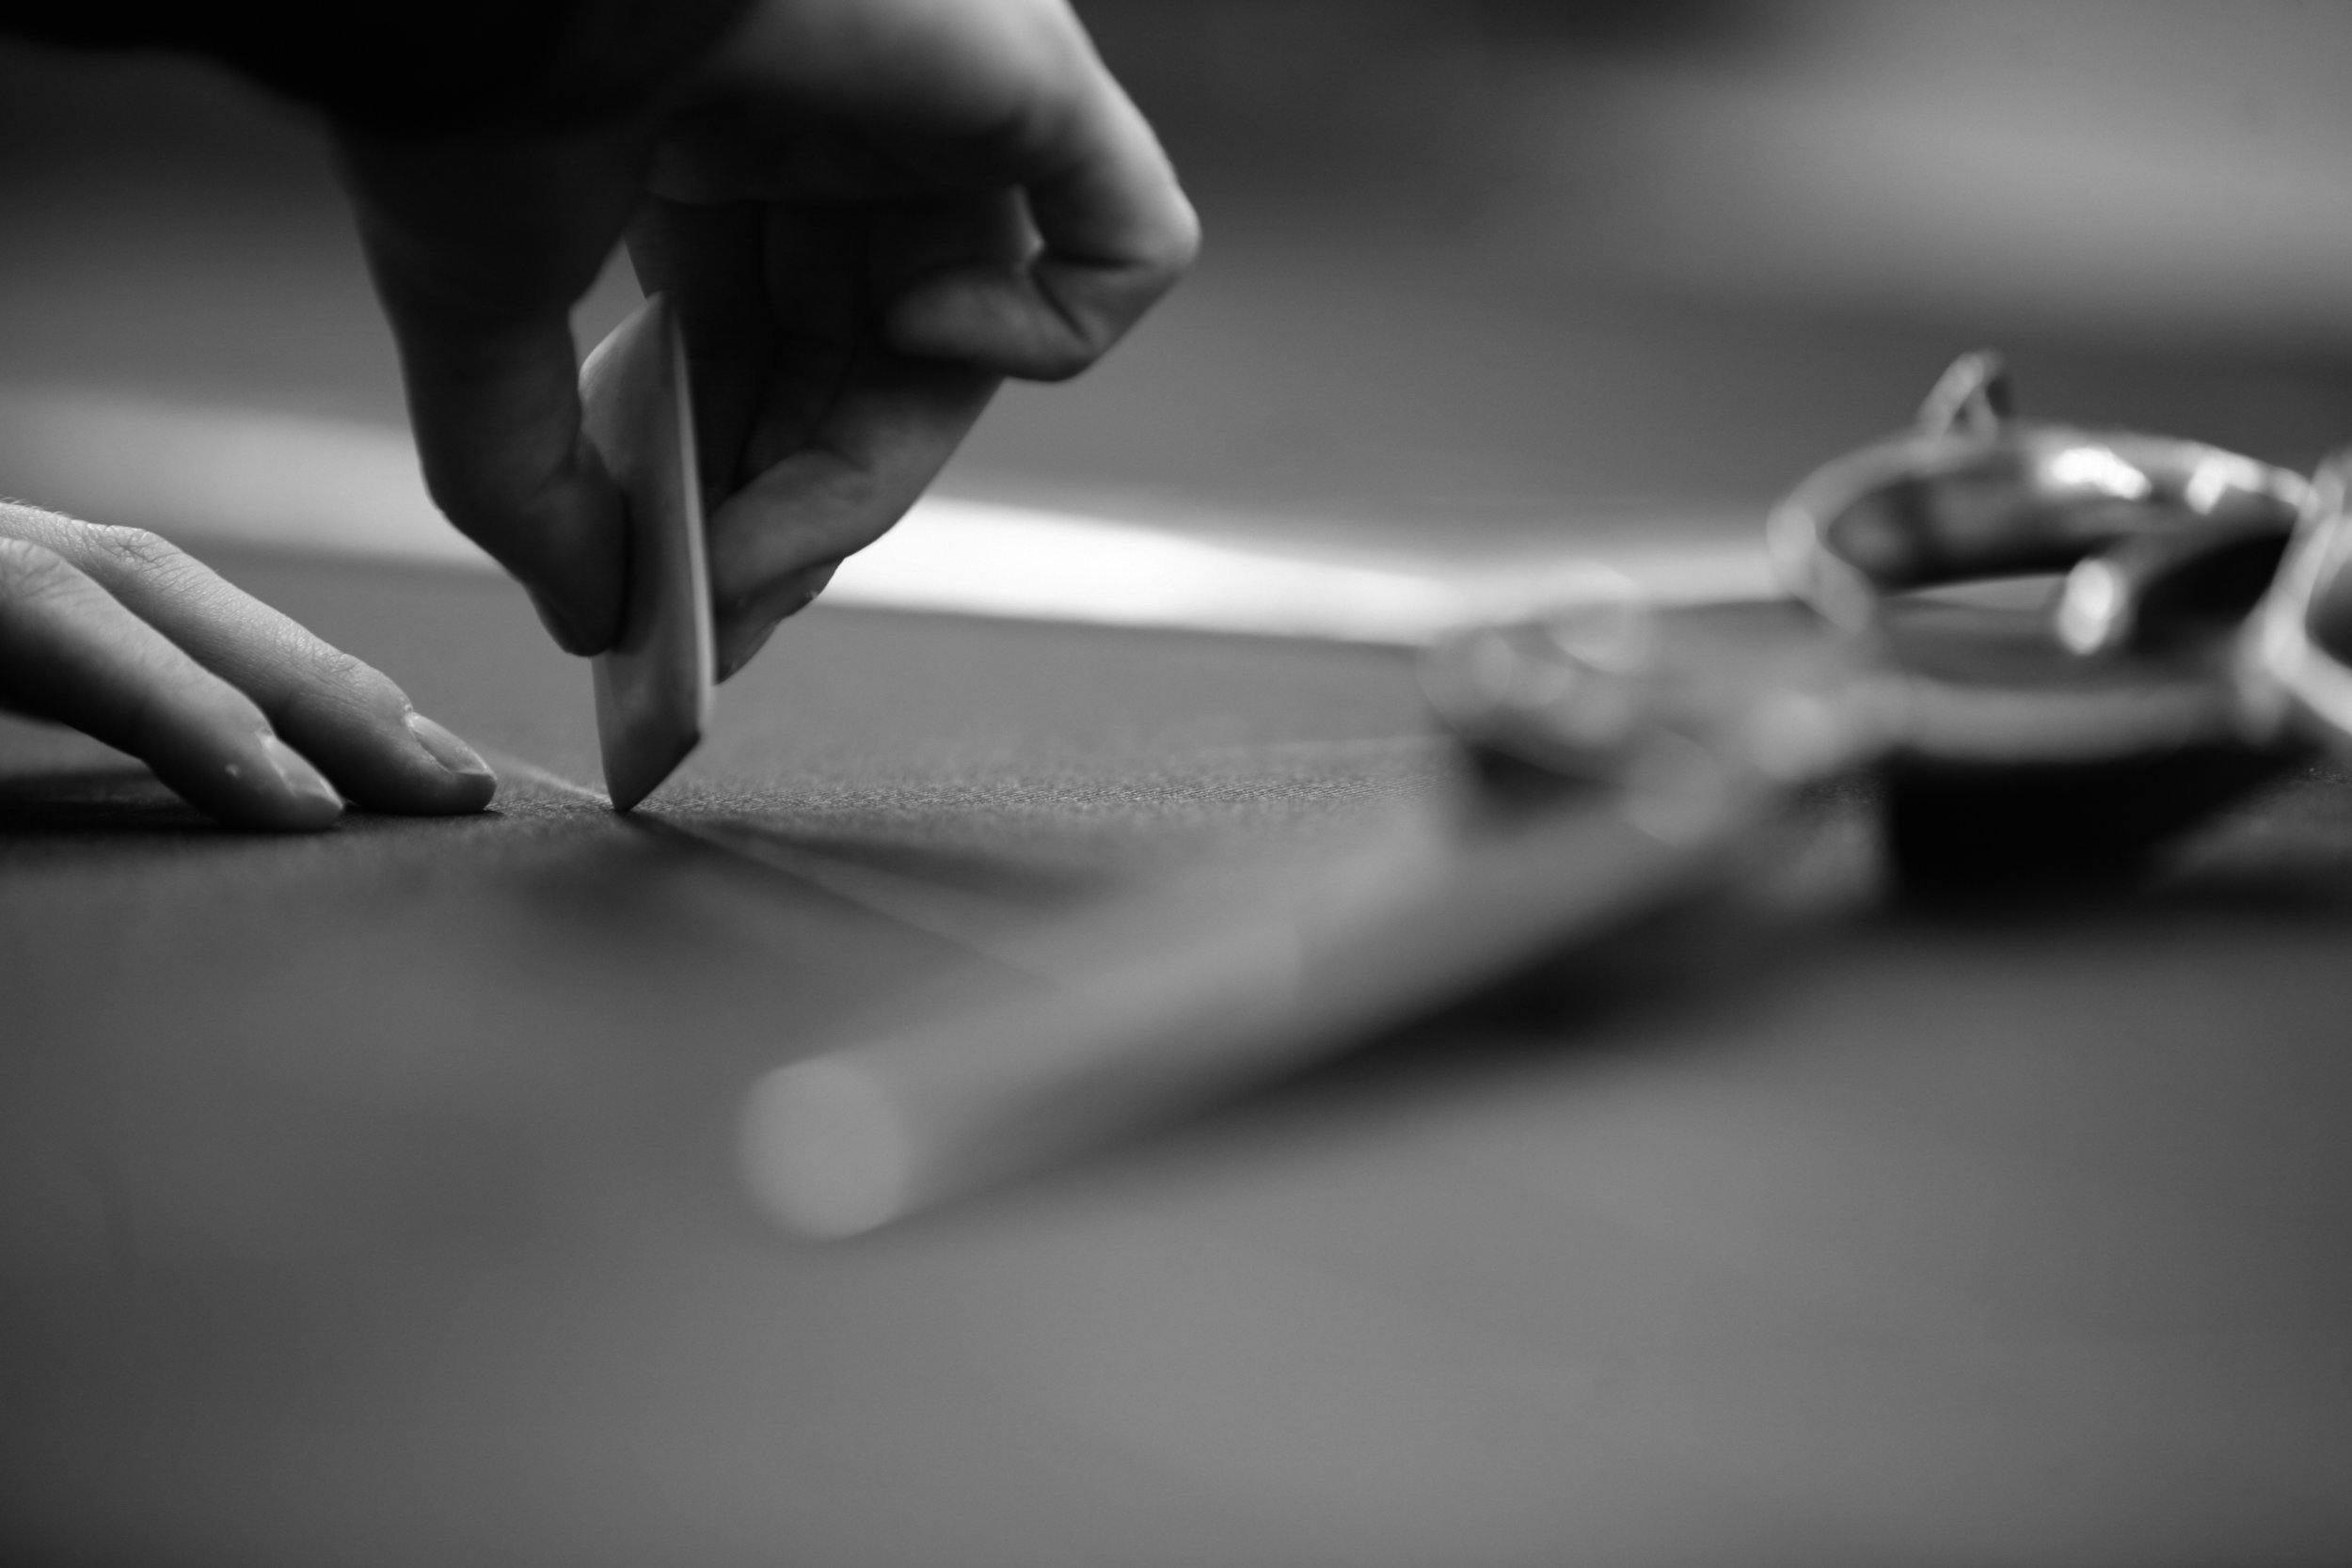 Founded by Otto Hertz in 1938, Scabal has stood at the forefront of innovation in the fabric industry. Creating new standards for fine fabrics that broke the super 100's, 120's, 150's, and 180's thread count barriers. Scabal also was the first to incorporate precious stones like Lapis-Lazuli, gold, and crushed diamonds directly within the super fine wool and pure silk at their heritage british mill.